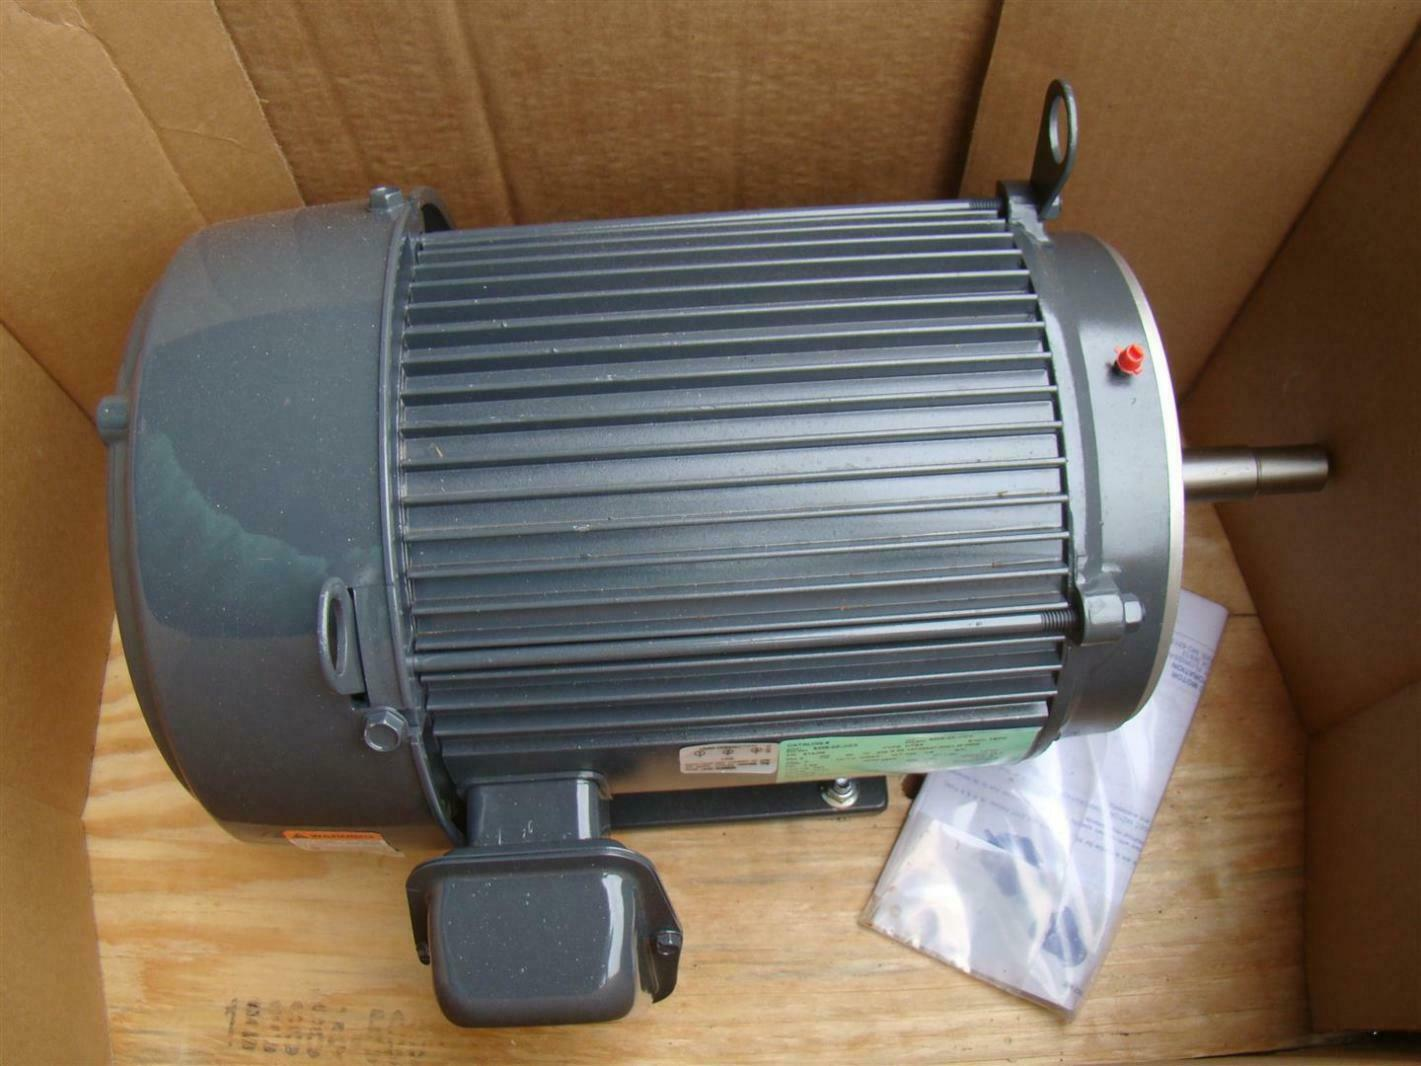 Us motors nidec 3 phase electric motor 7 5 hp 2905 rpm for 7 5 hp 3 phase motor